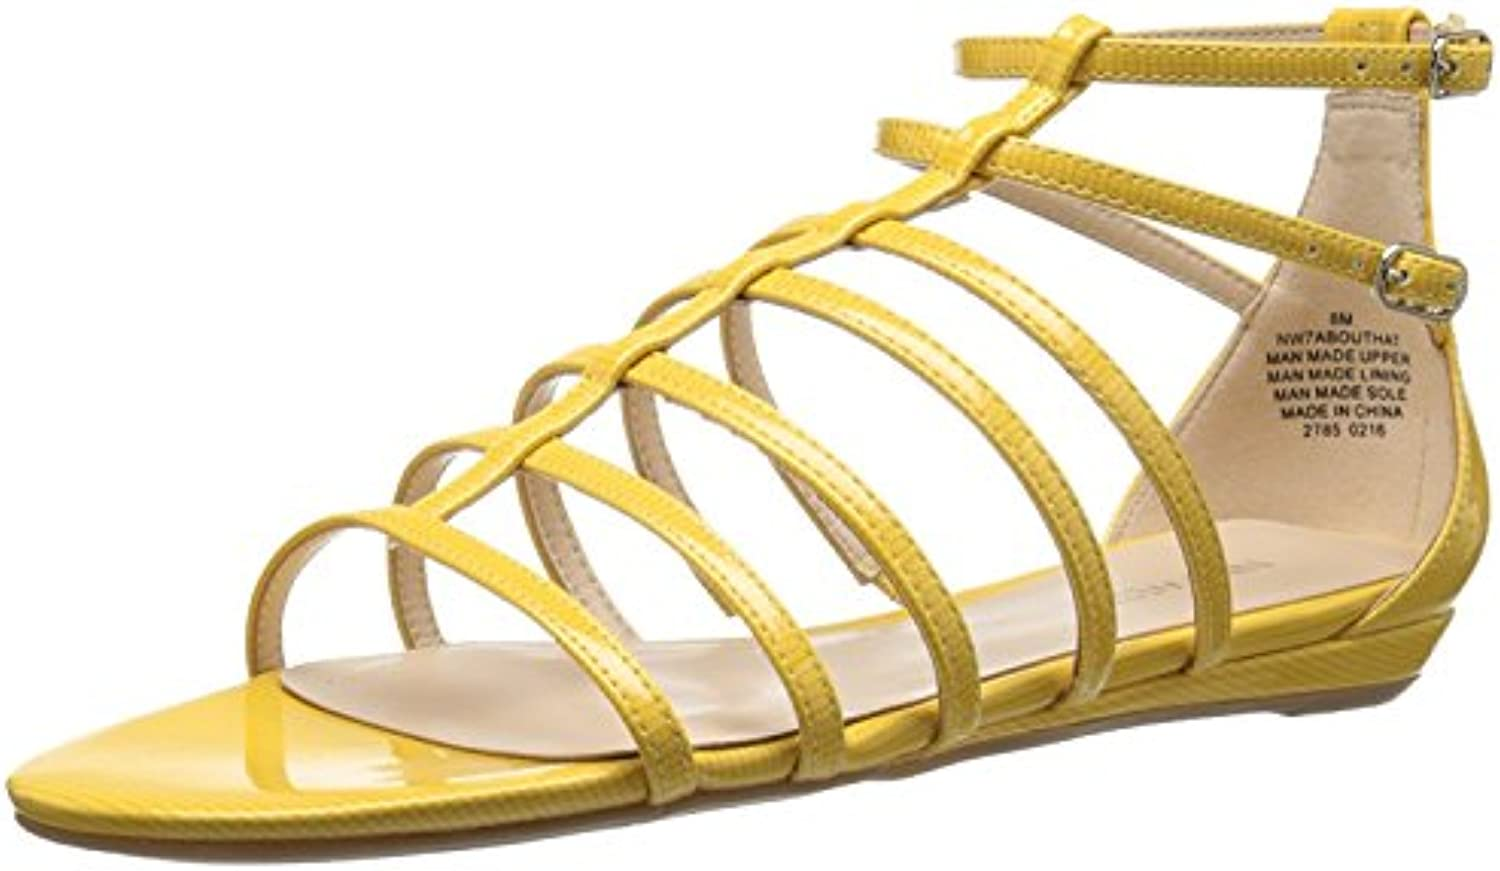 Nine West Women'S Aboutthat Synthetic Dress Sandal, Yellow Synthetic, 36 B(M) EU/4 B(M) UK